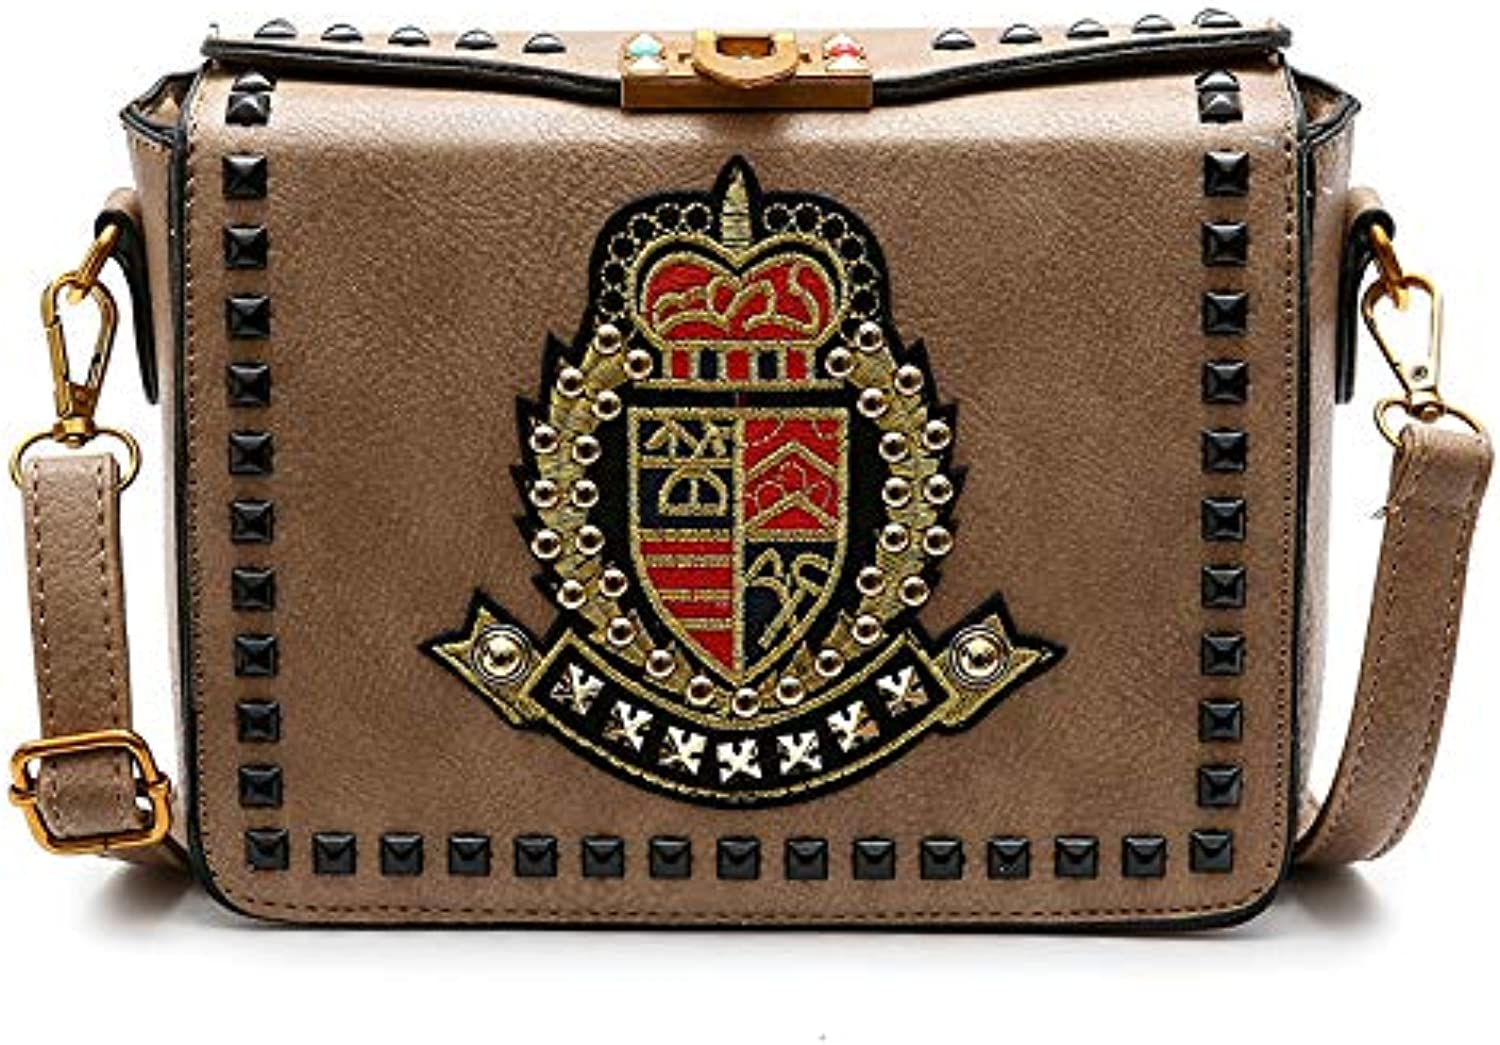 AI BAO Women's Vintage Embroidered Cross Body Bag Shield Small Party Bag Wild Fashion Personalized Shoulder Bag